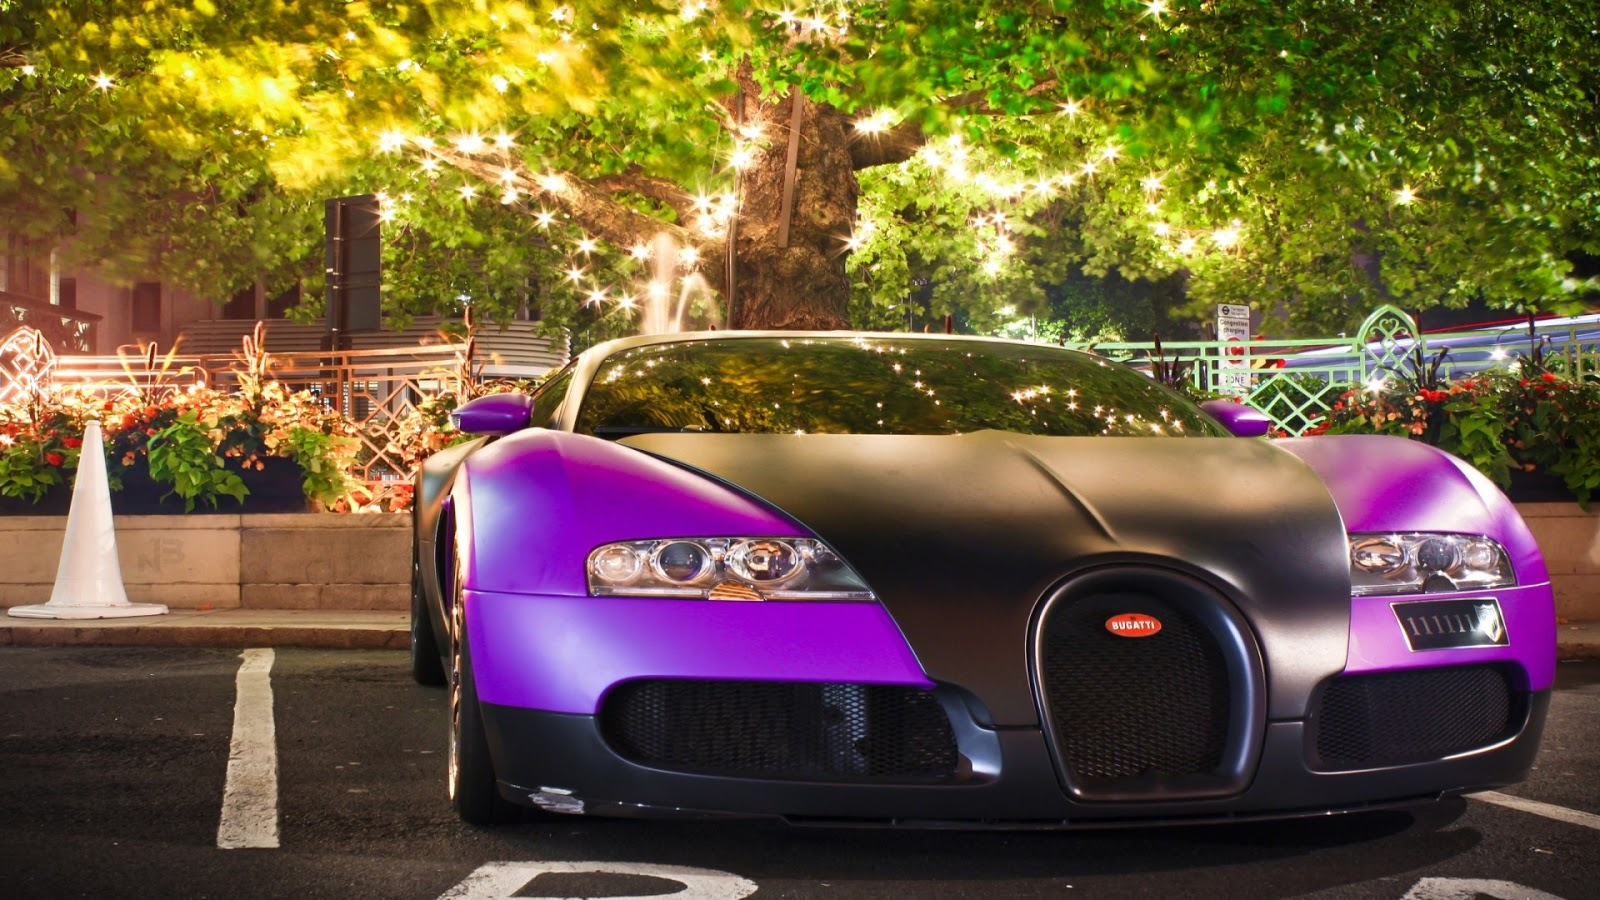 Bugatti Cars Wallpapers 1080p Bugatti Iphone Wallpaper Hd: Bugatti Veyron Sports Cars HD Wallpapers Download 1080p